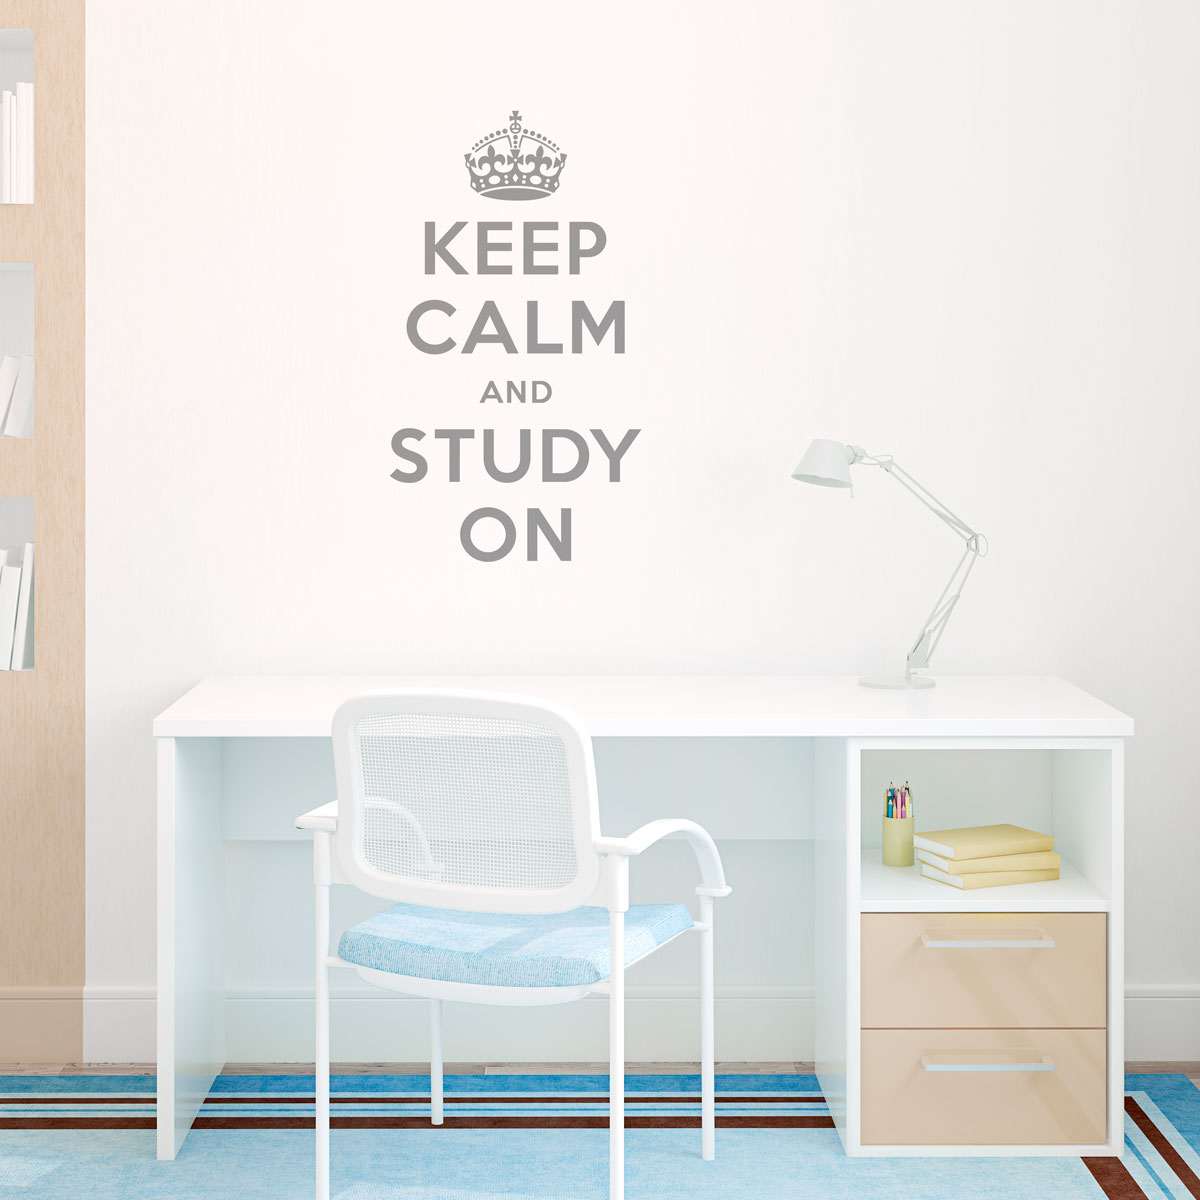 Wall Decal Quotes For Bedroom Keep Calm And Study On Wall Quote Decal